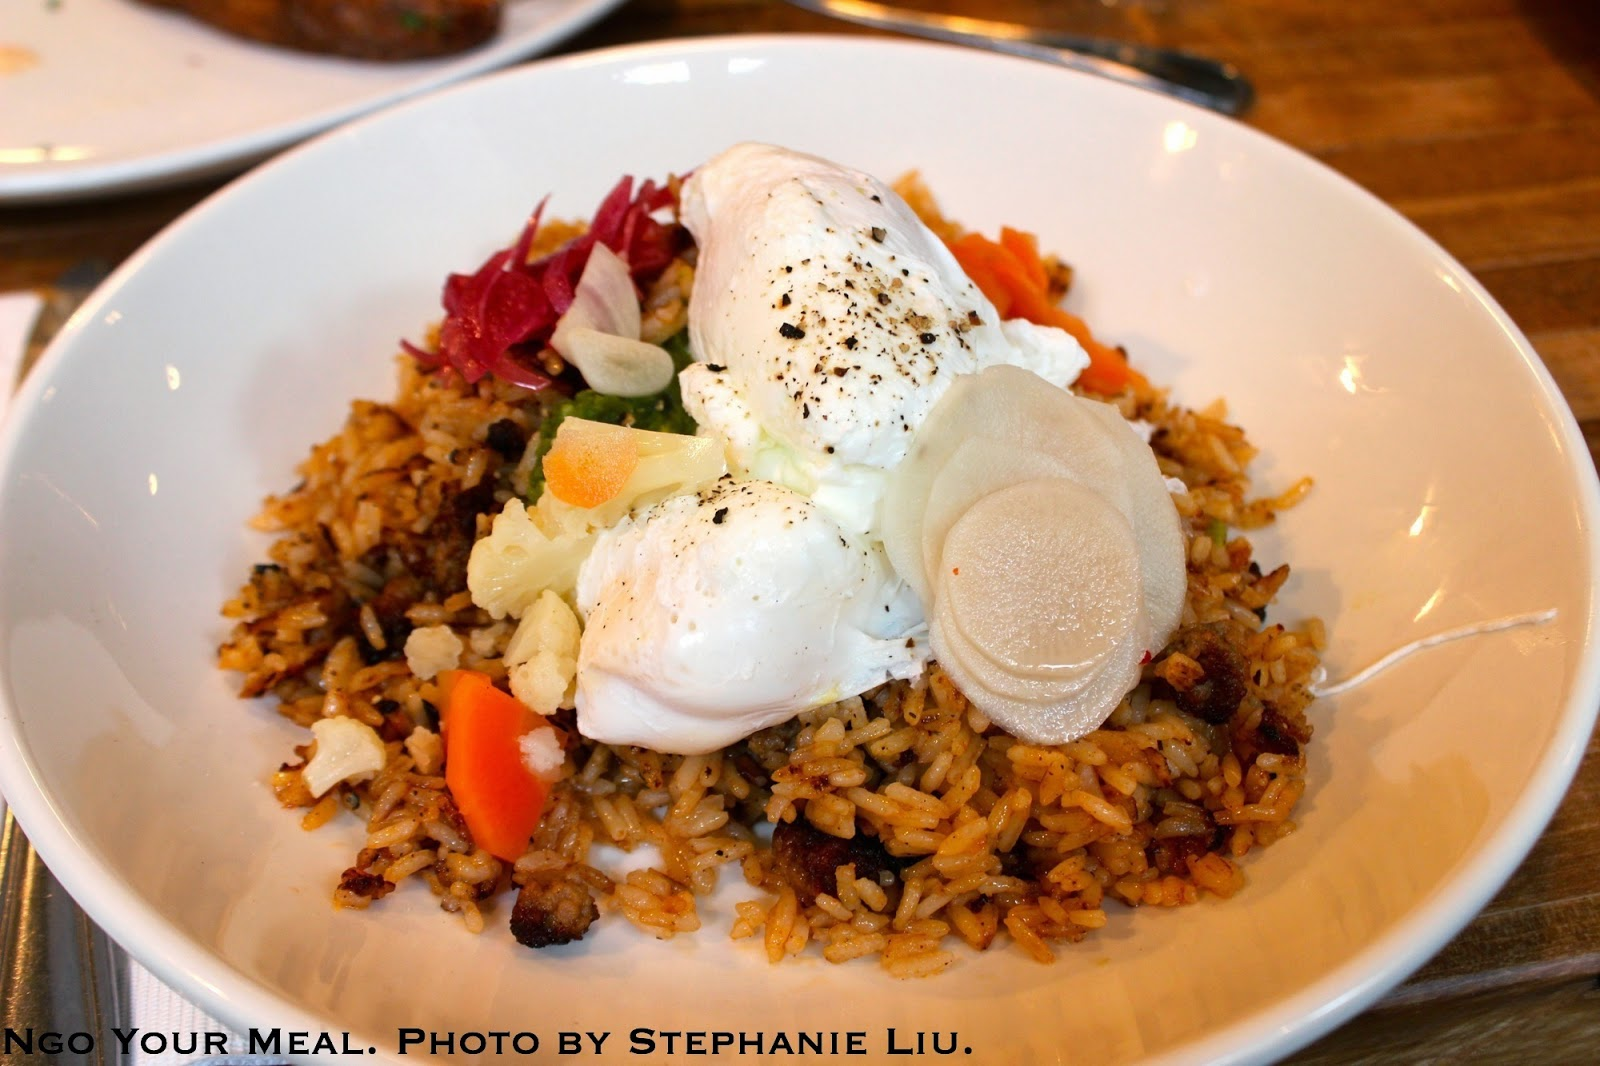 Southern Fried Rice with Spicy Sausage, Pickles, Poached Egg